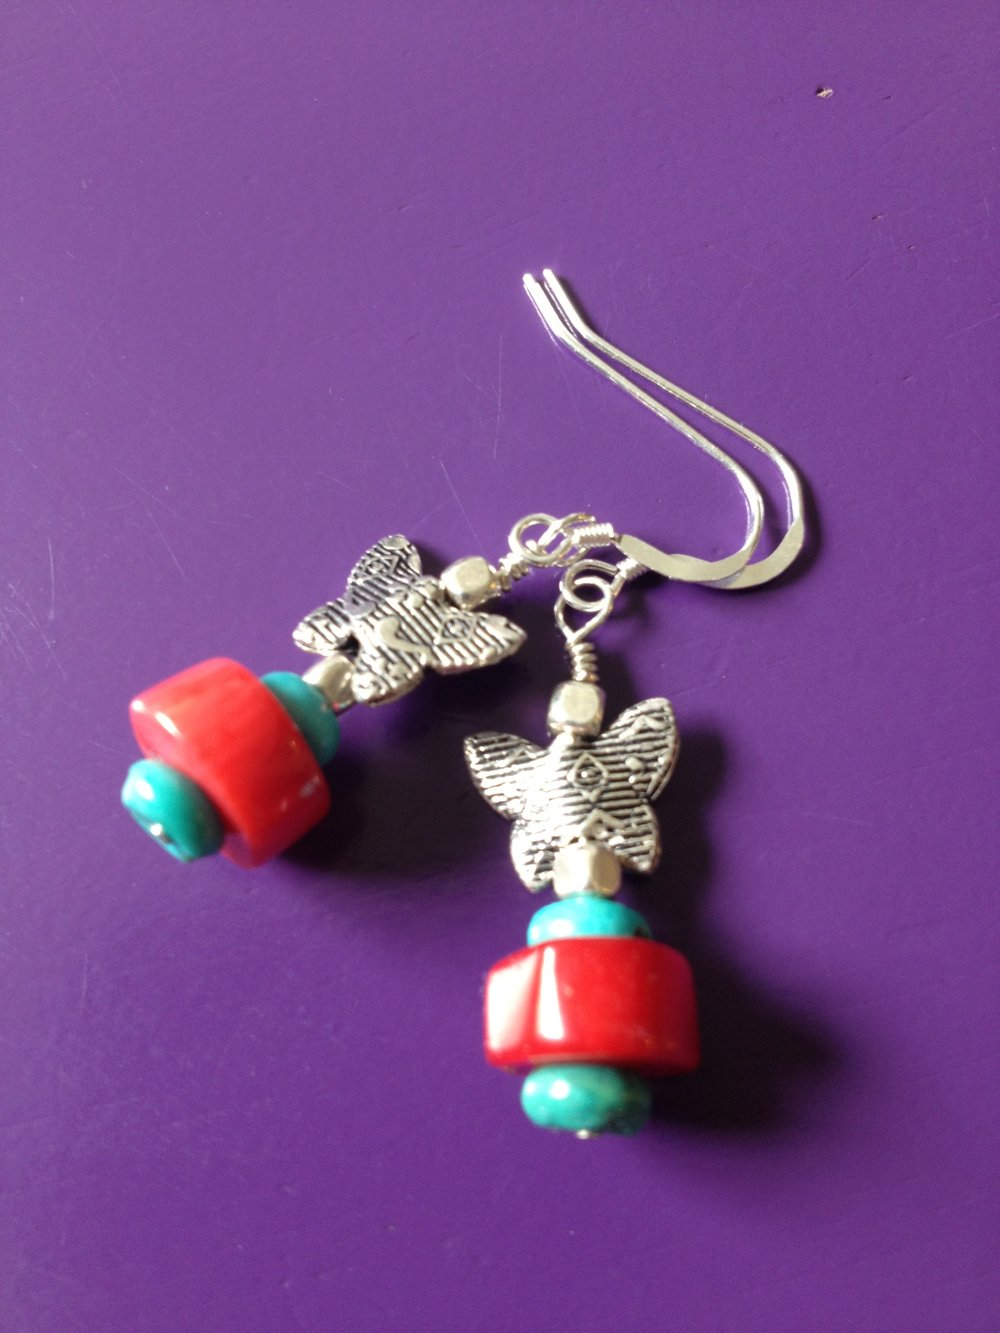 Custom-made coral, turquoise and Thai silver drop earrings for a special chica. Contact me to commission something pretty.